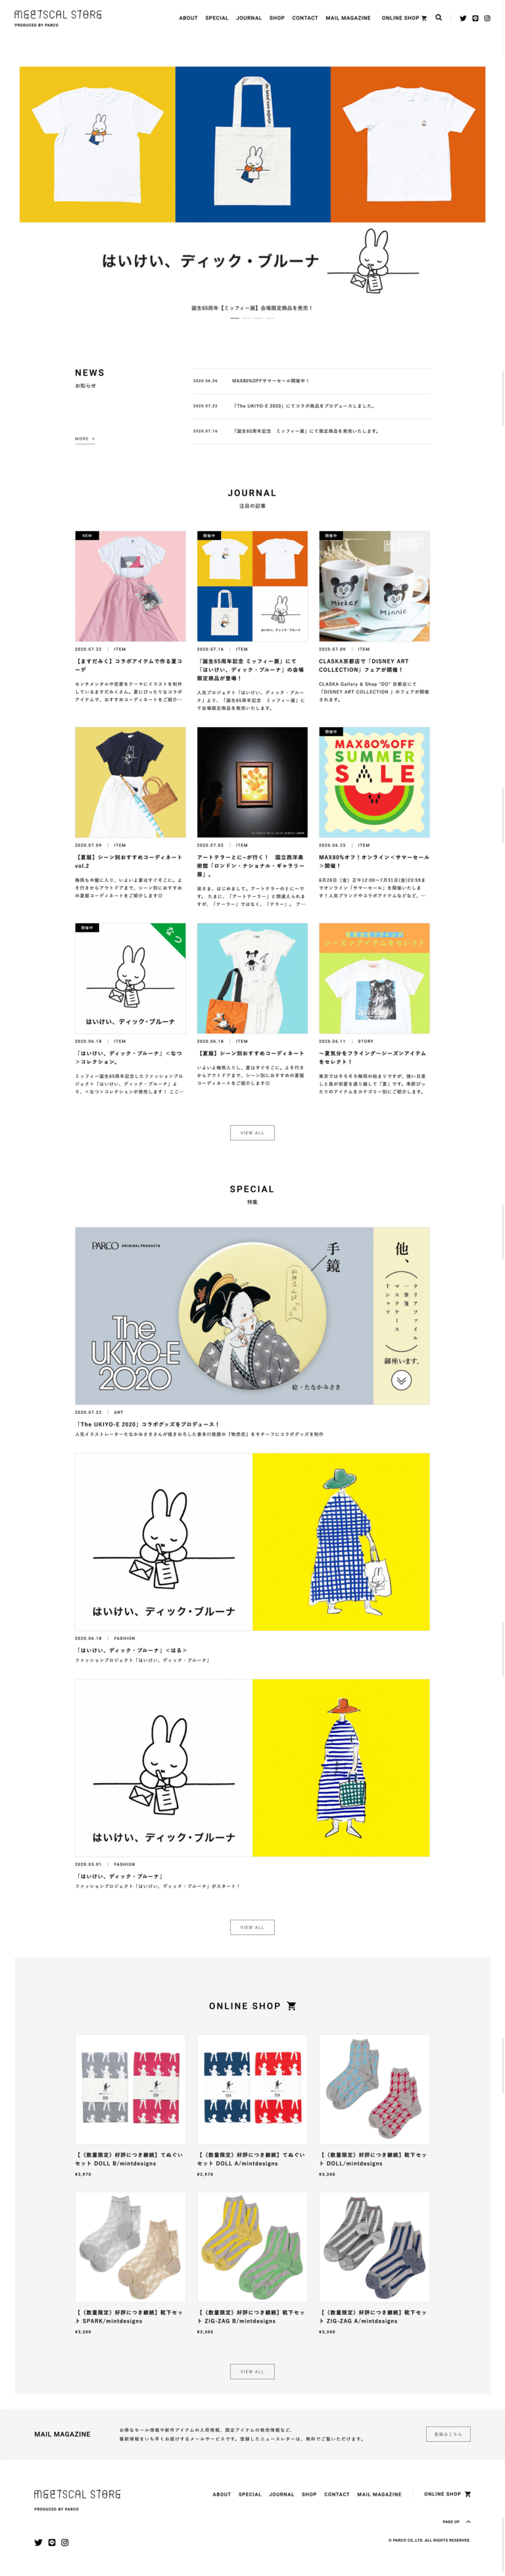 MEETSCALSTORE | Prodced by PARCO